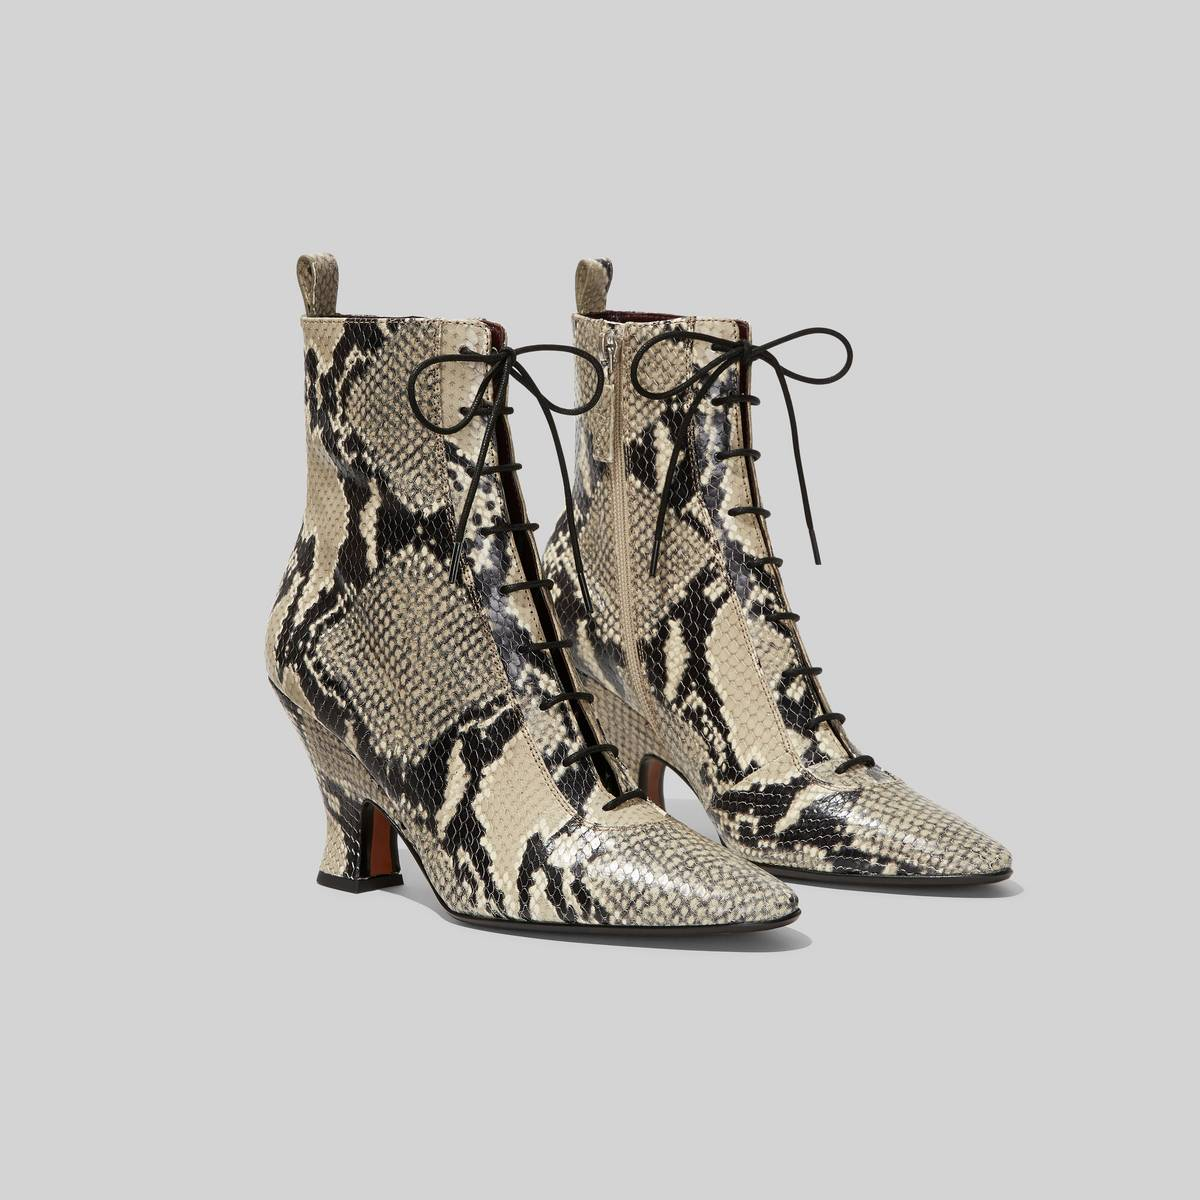 Vintage-inspired leather boot on a sculpted heel. | MARC JACOBS Women\\'s The Victorian Boots Shoes in Natural, Size 35